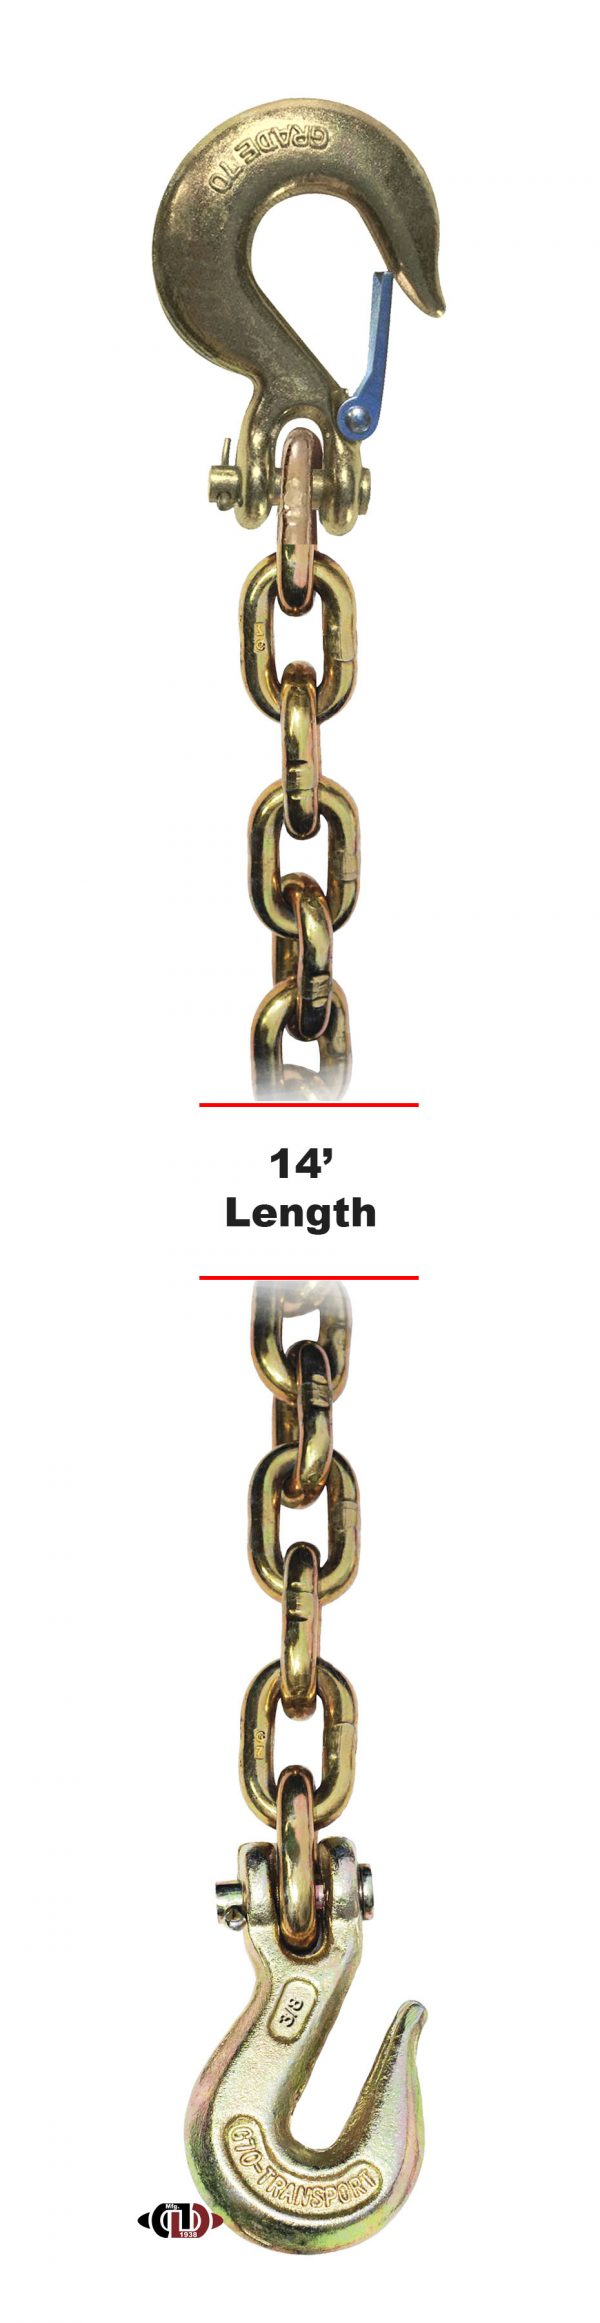 """G-70 3/8"""" x 14' Chain with Grab Hook One End & Slip Hook One End DBC-38x14-G7-CSCGH"""